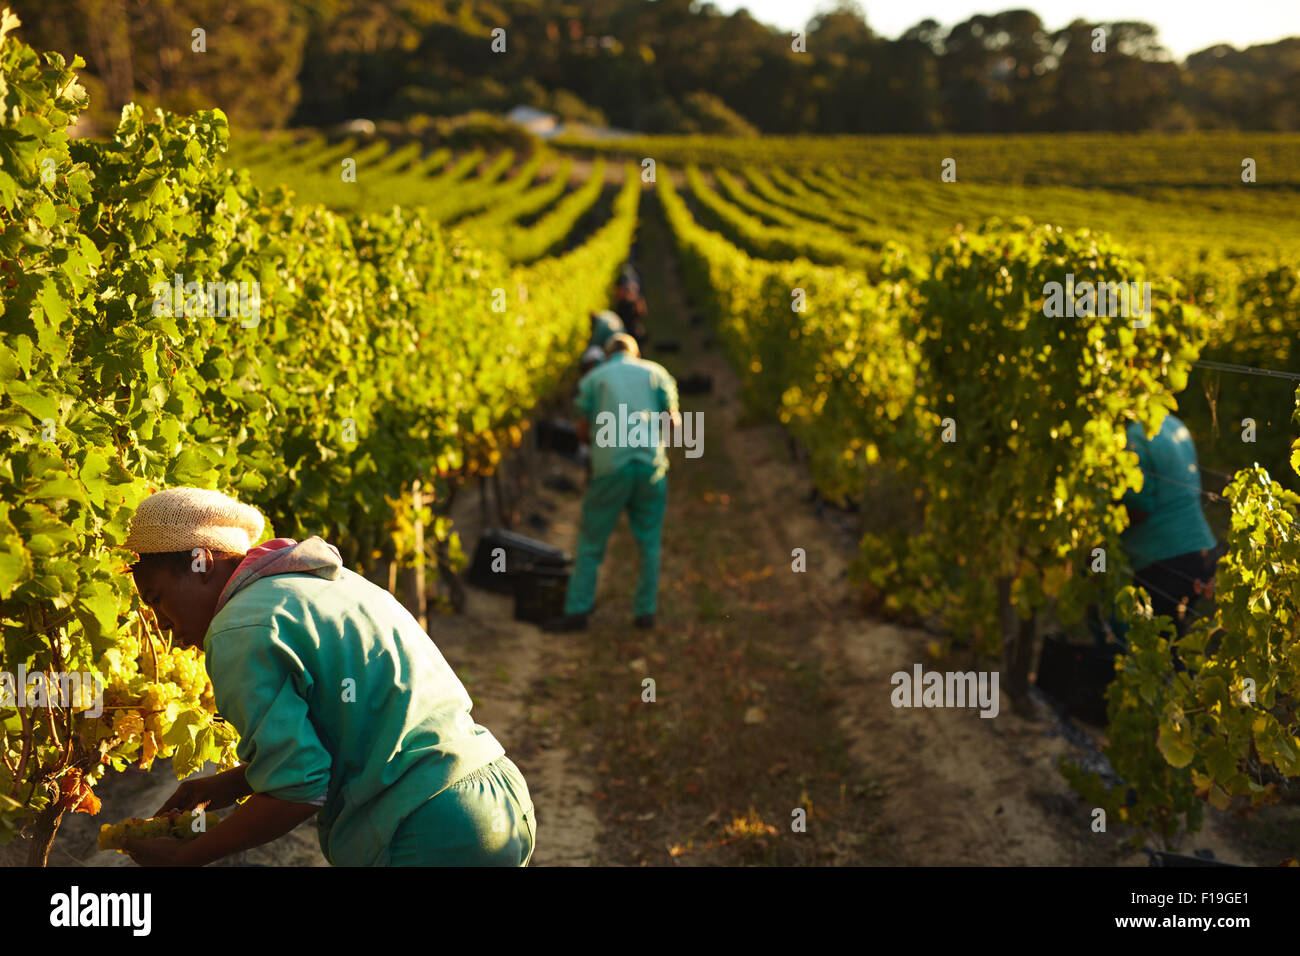 Grape pickers working in field of grape vines. Farm workers harvesting grapes in vineyard for making wine. - Stock Image